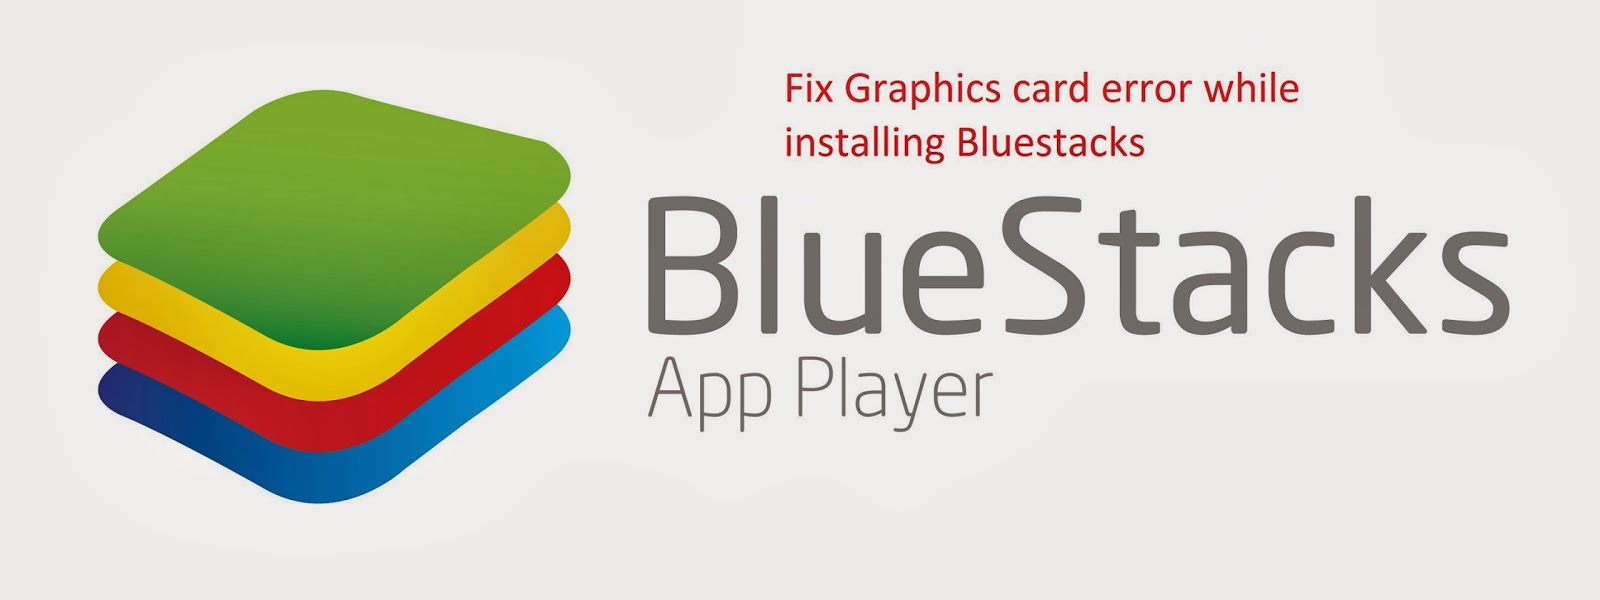 bluestacks graphics card error